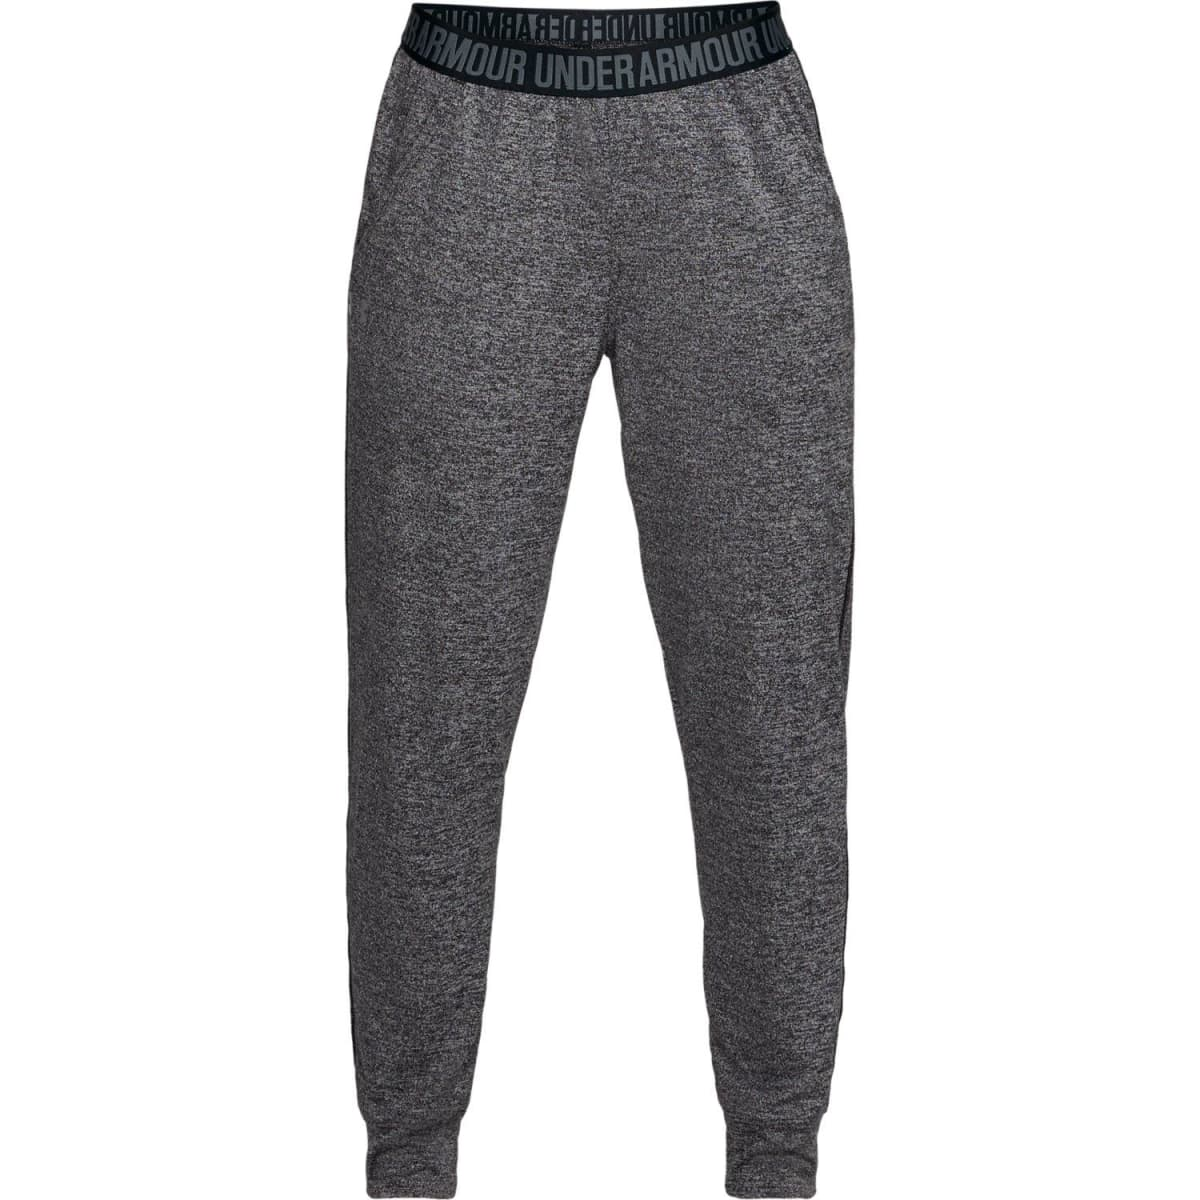 ef5e854443 Under Armour Products | Sportsmans Warehouse